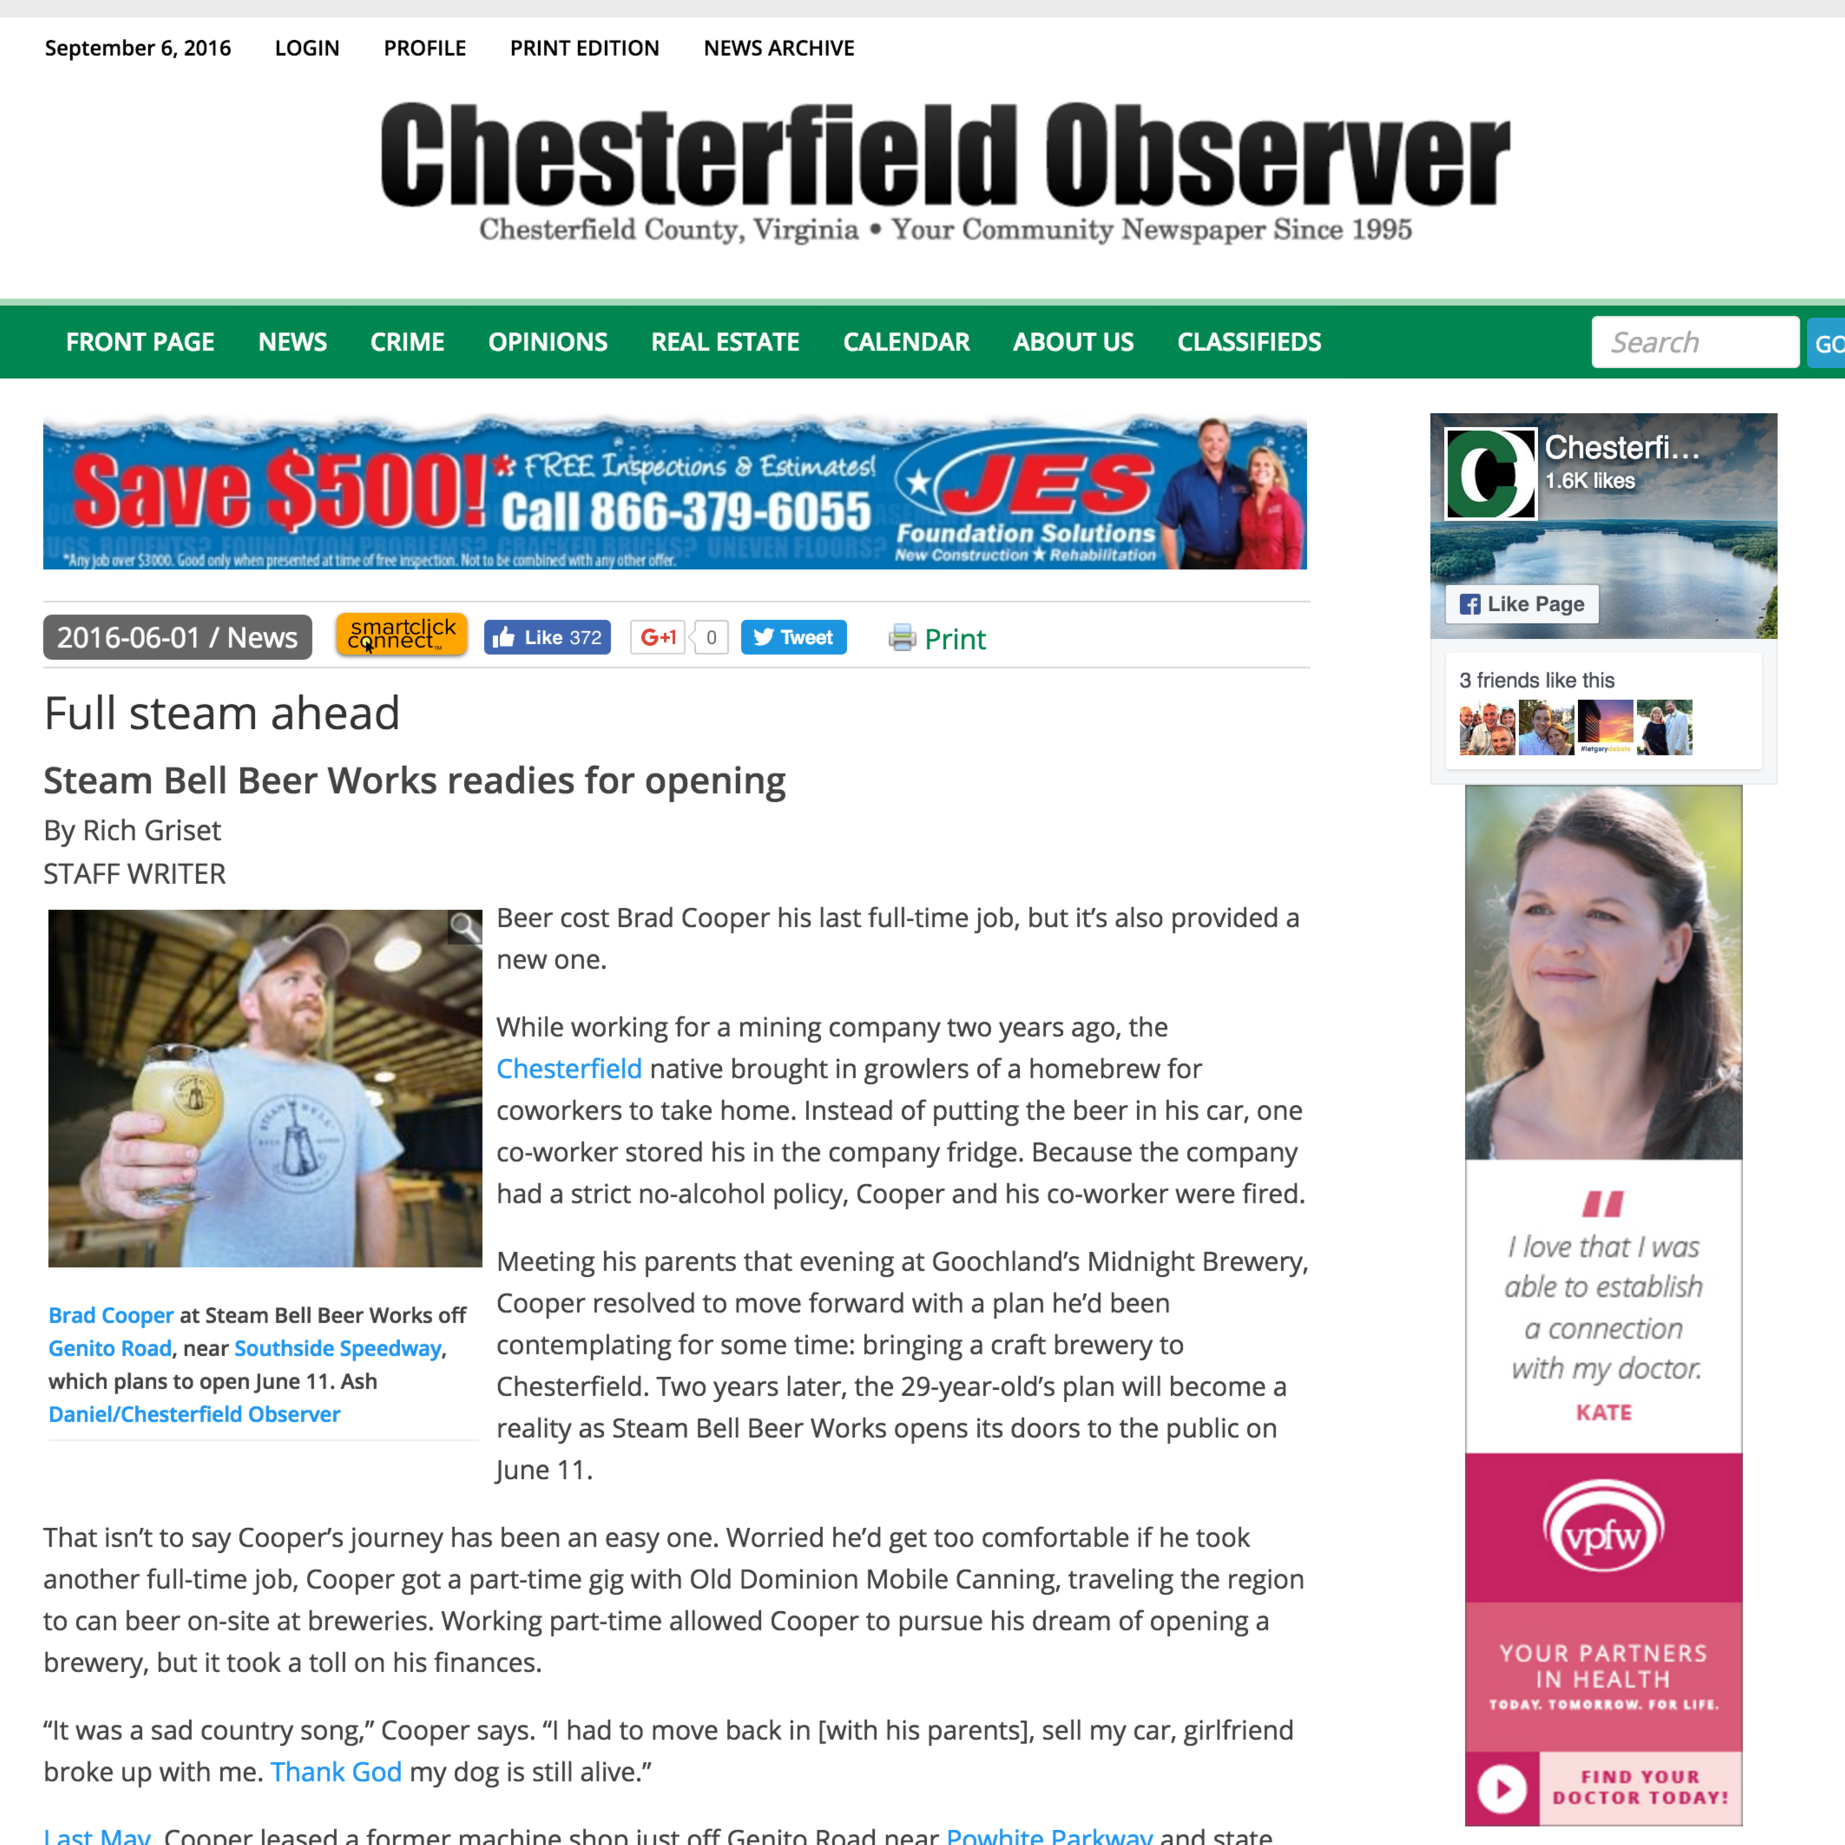 Chesterfield Observer, September 2016